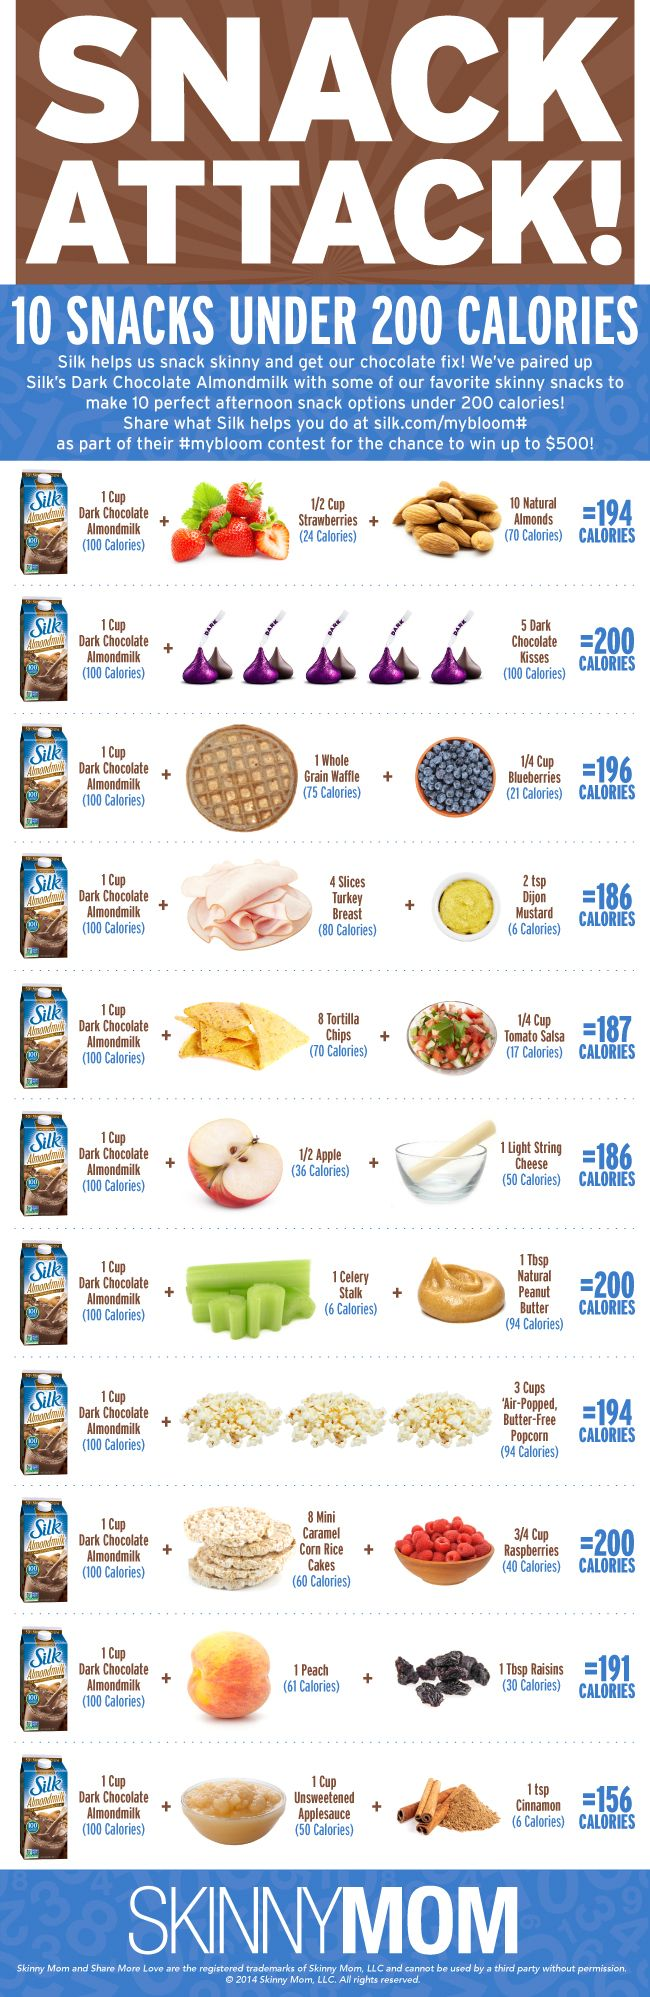 10 Snacks Under 200 Calories   Skinny Mom   Where Moms Get The Skinny On Healthy Living